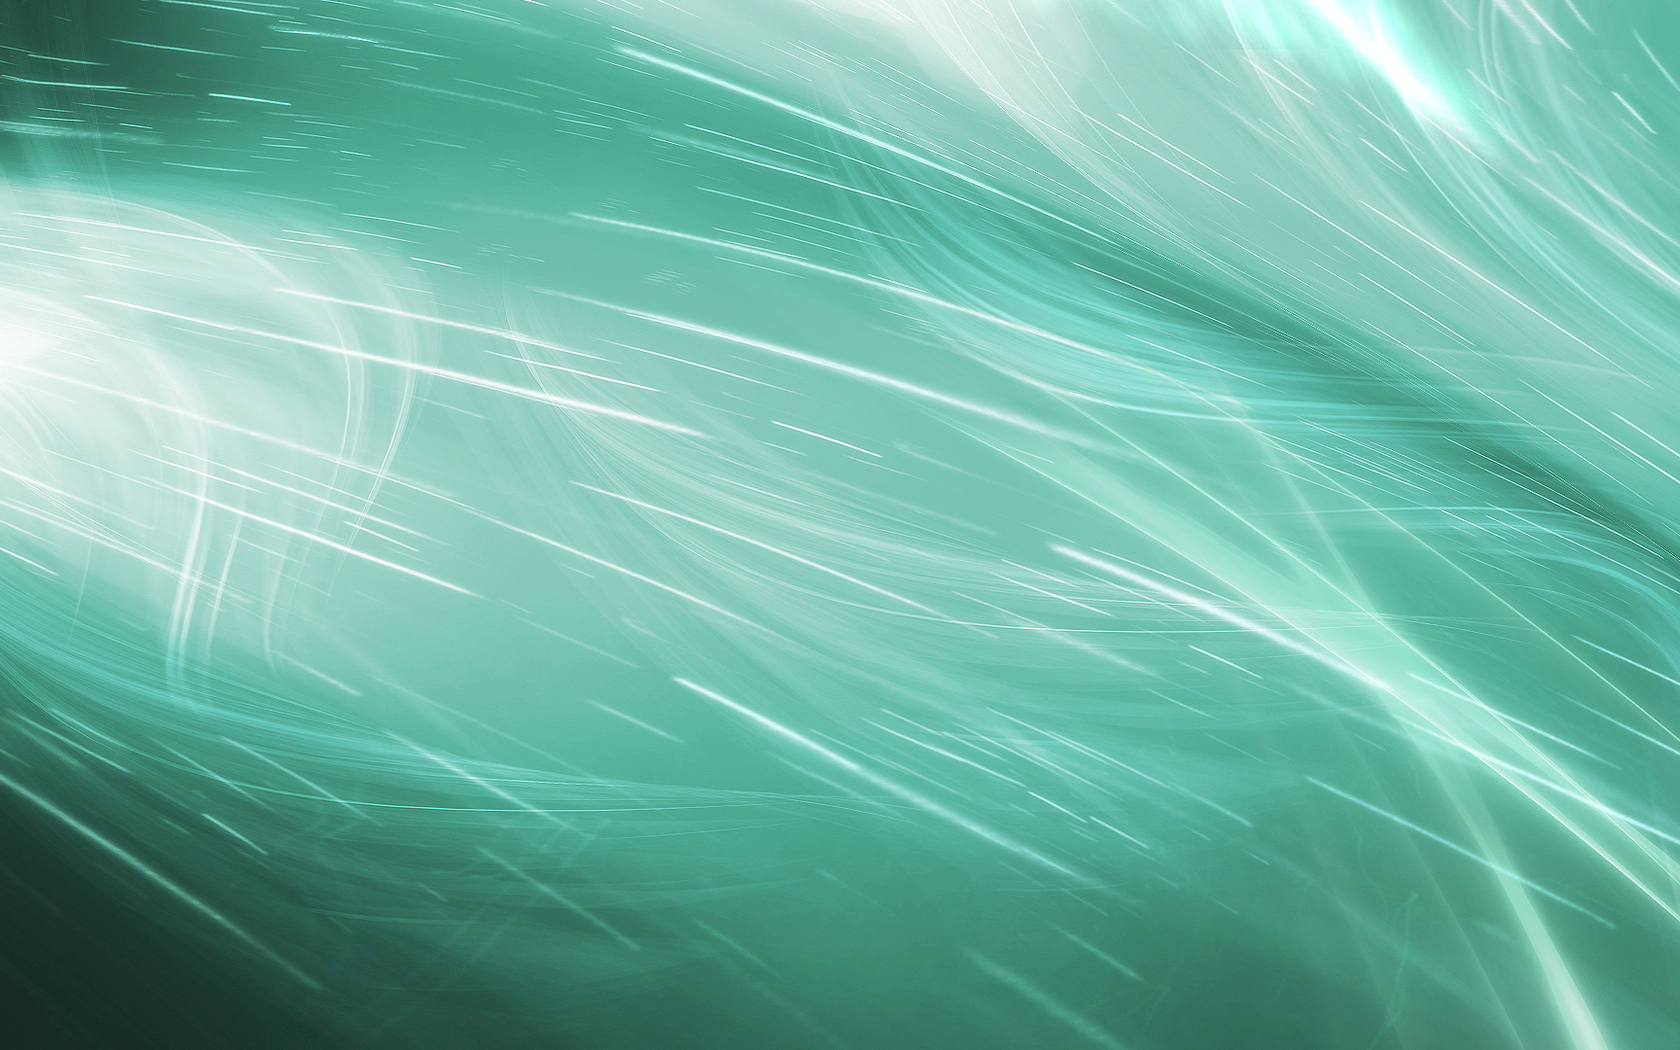 Abstract Wind Wallpaper